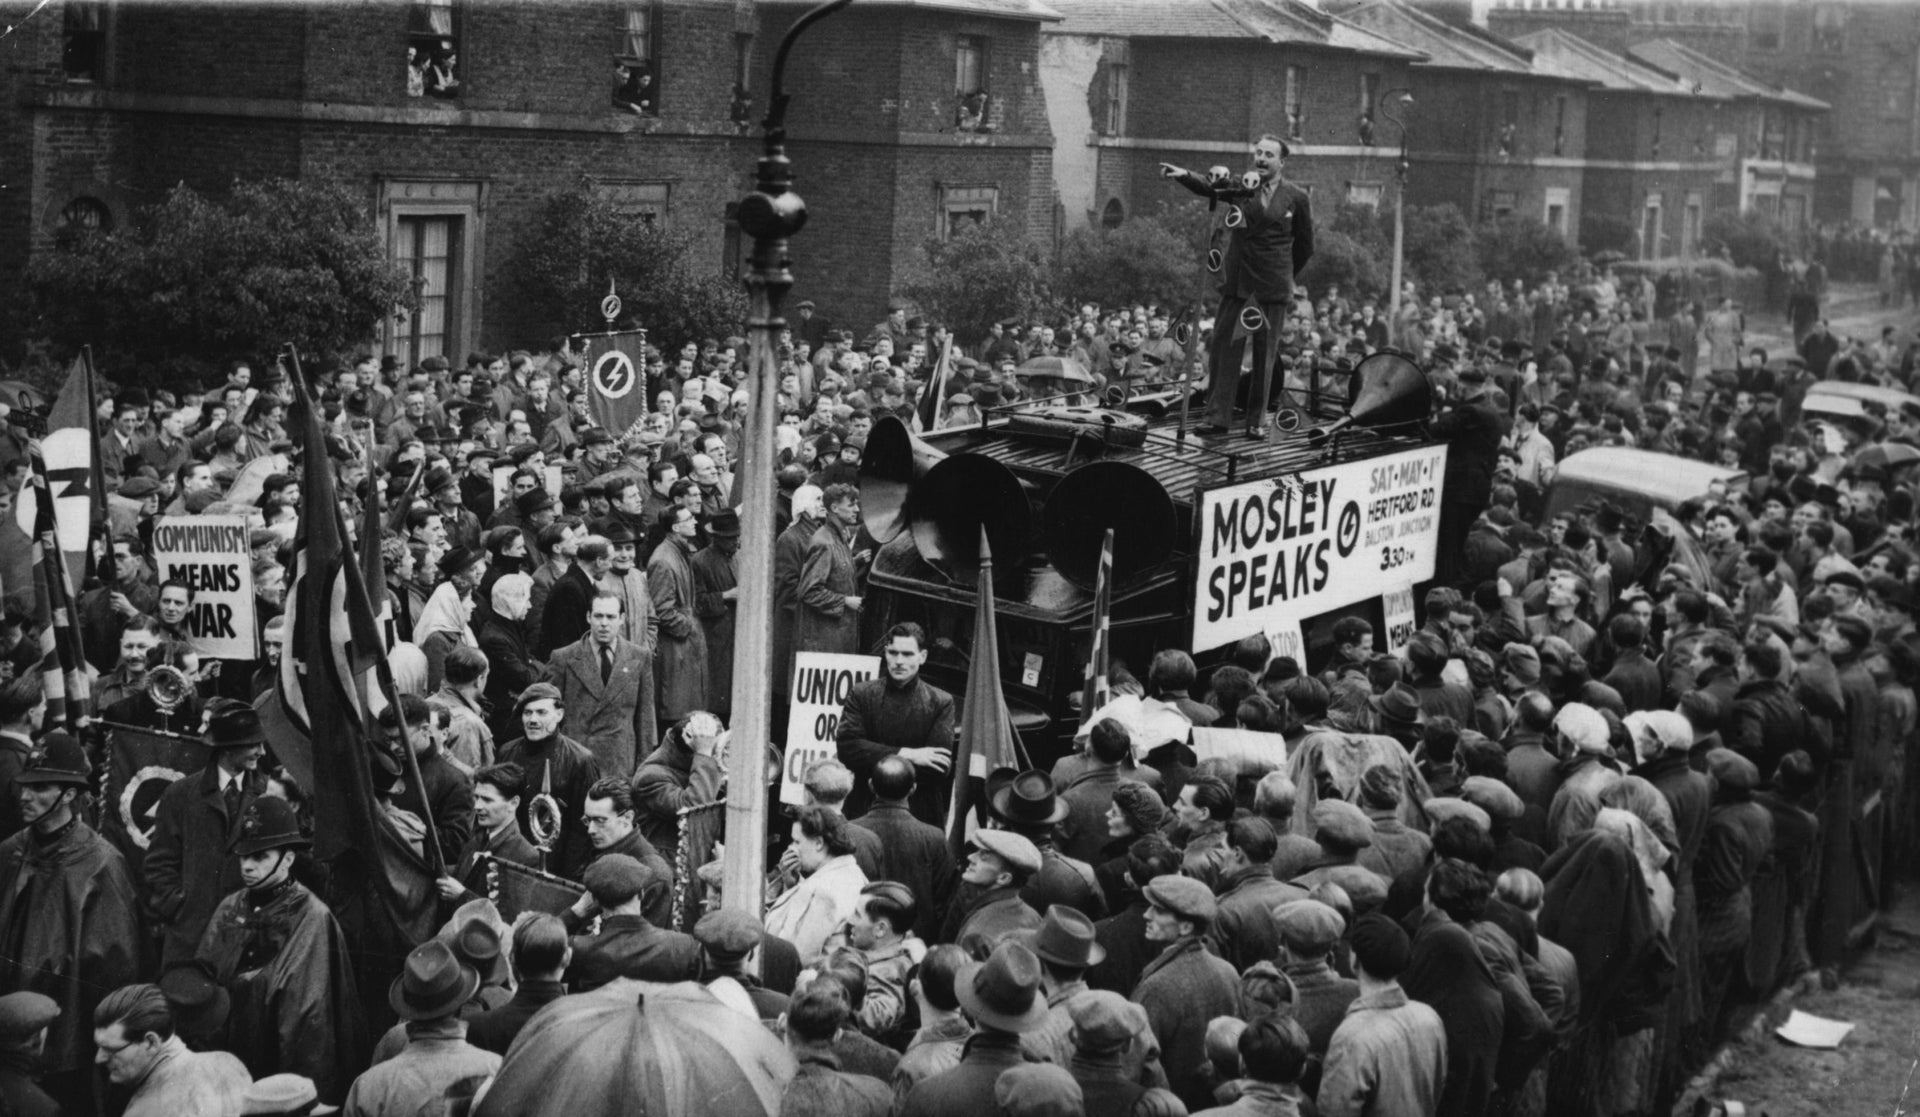 English fascist leader Oswald Mosley addresses a large crowd in Dalston, London, May 1, 1948.